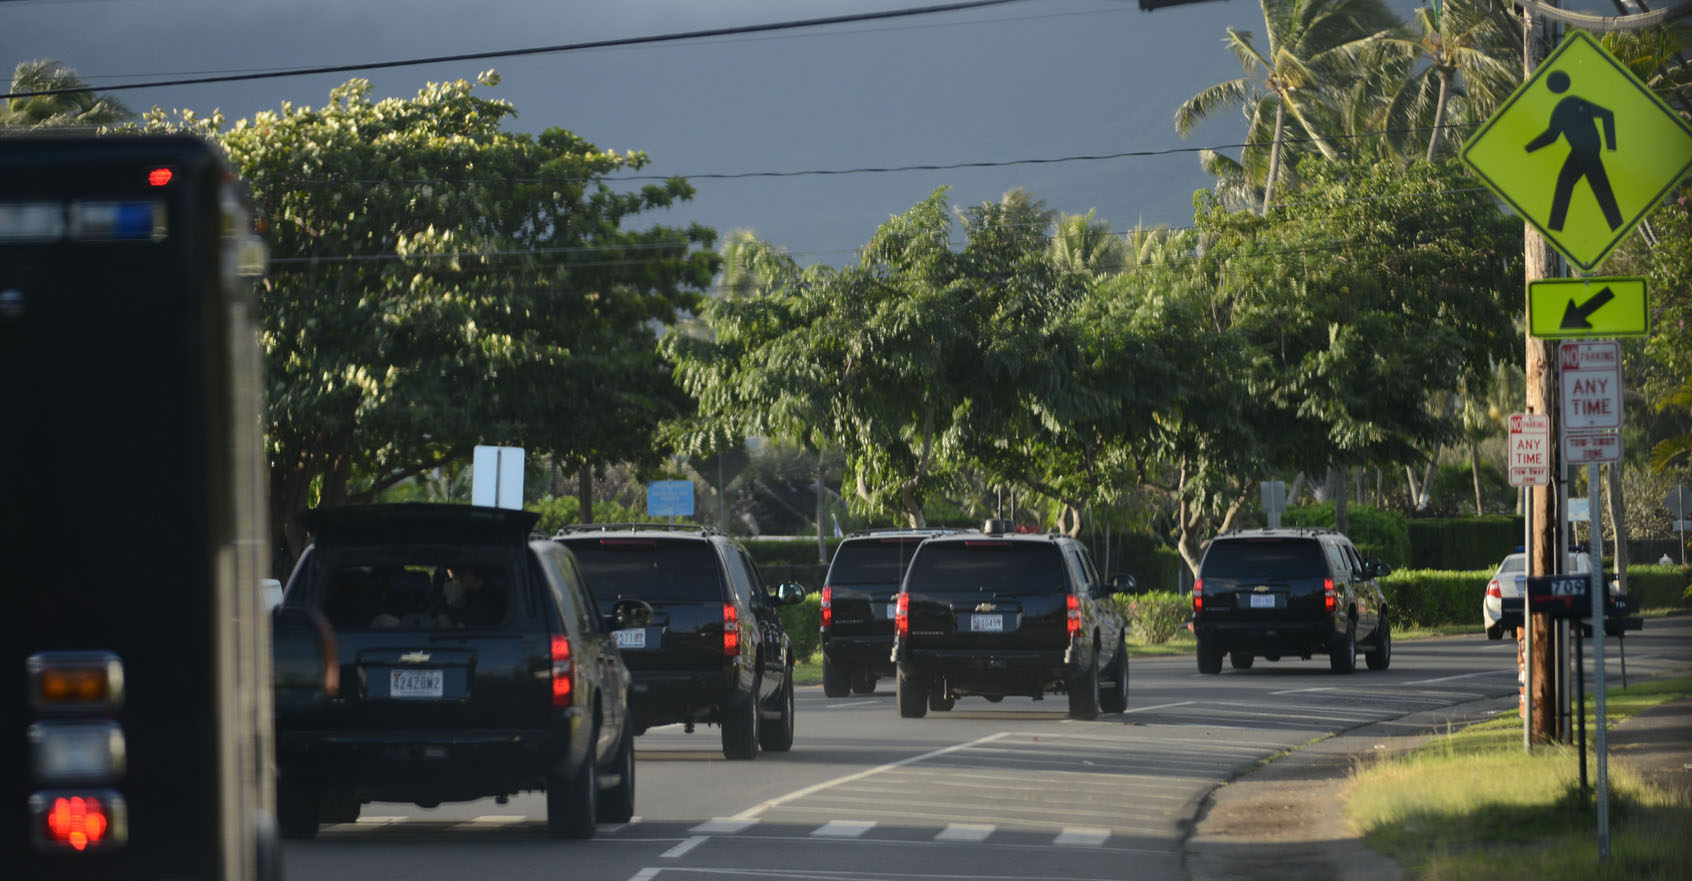 <p>Morning workouts in Kaneohe at Marine Corps Base Hawaii are part of the president's routine. After a visit in December 2013, his motorcade cruises back toward his vacation rental in Kailua.</p>